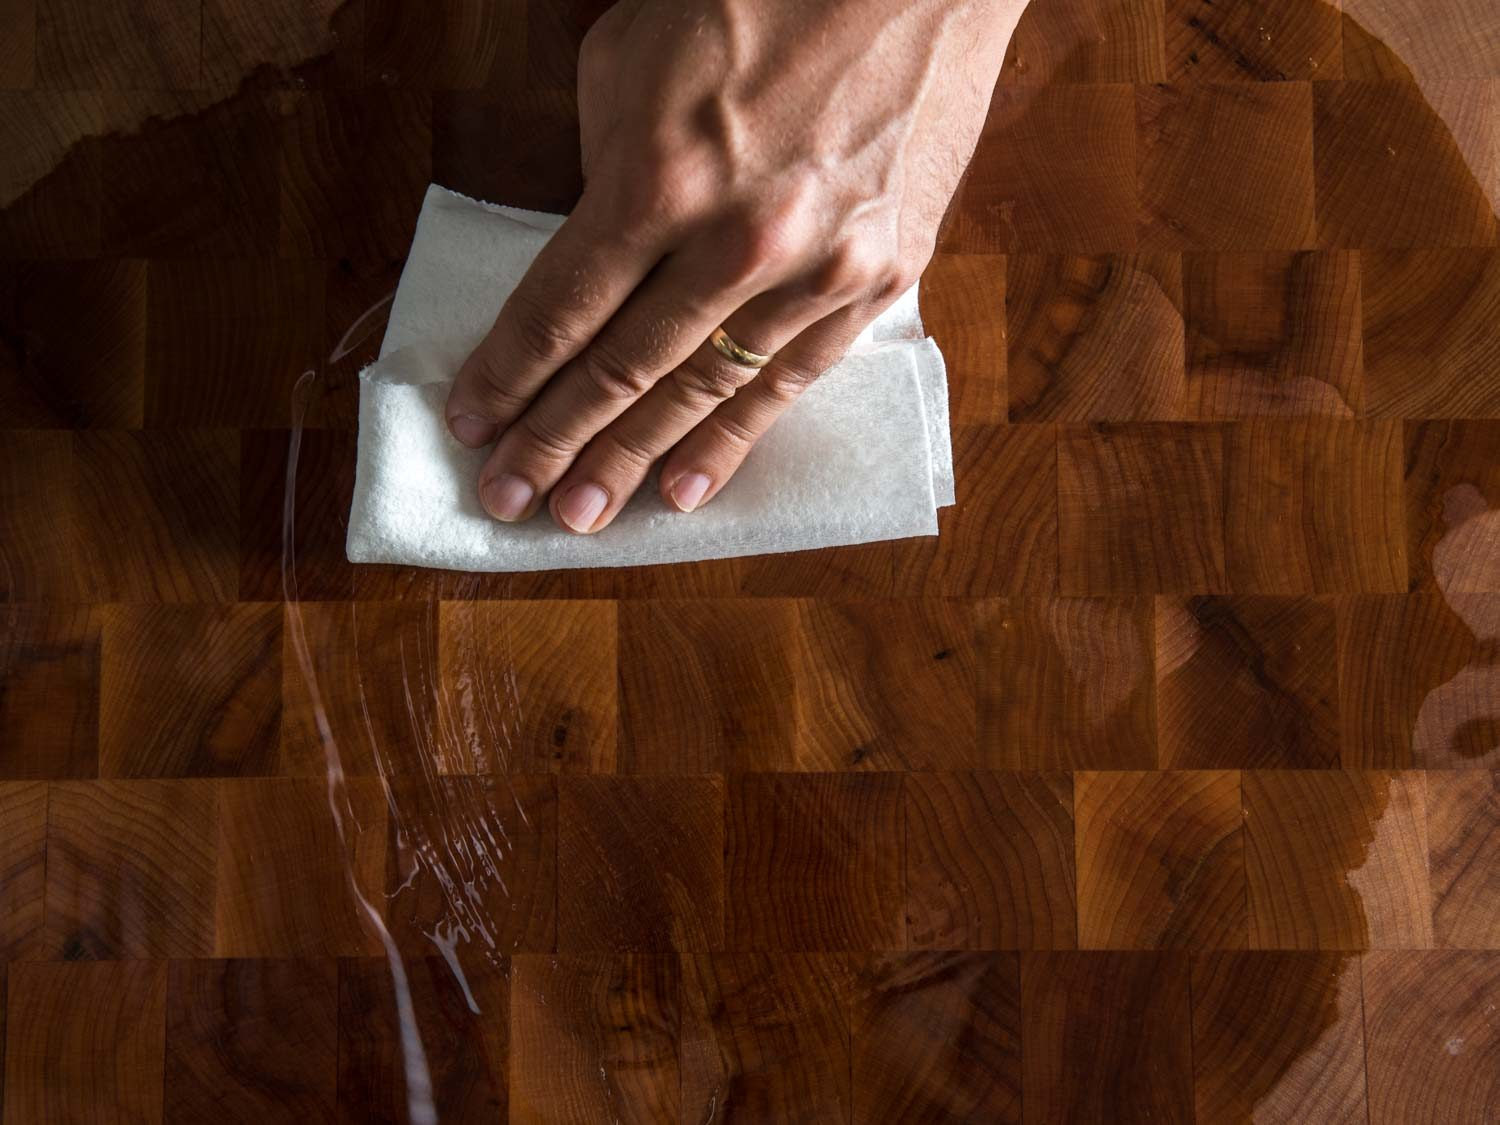 Maintaining and Safely Cleaning Butcher Block using food grade mineral oil